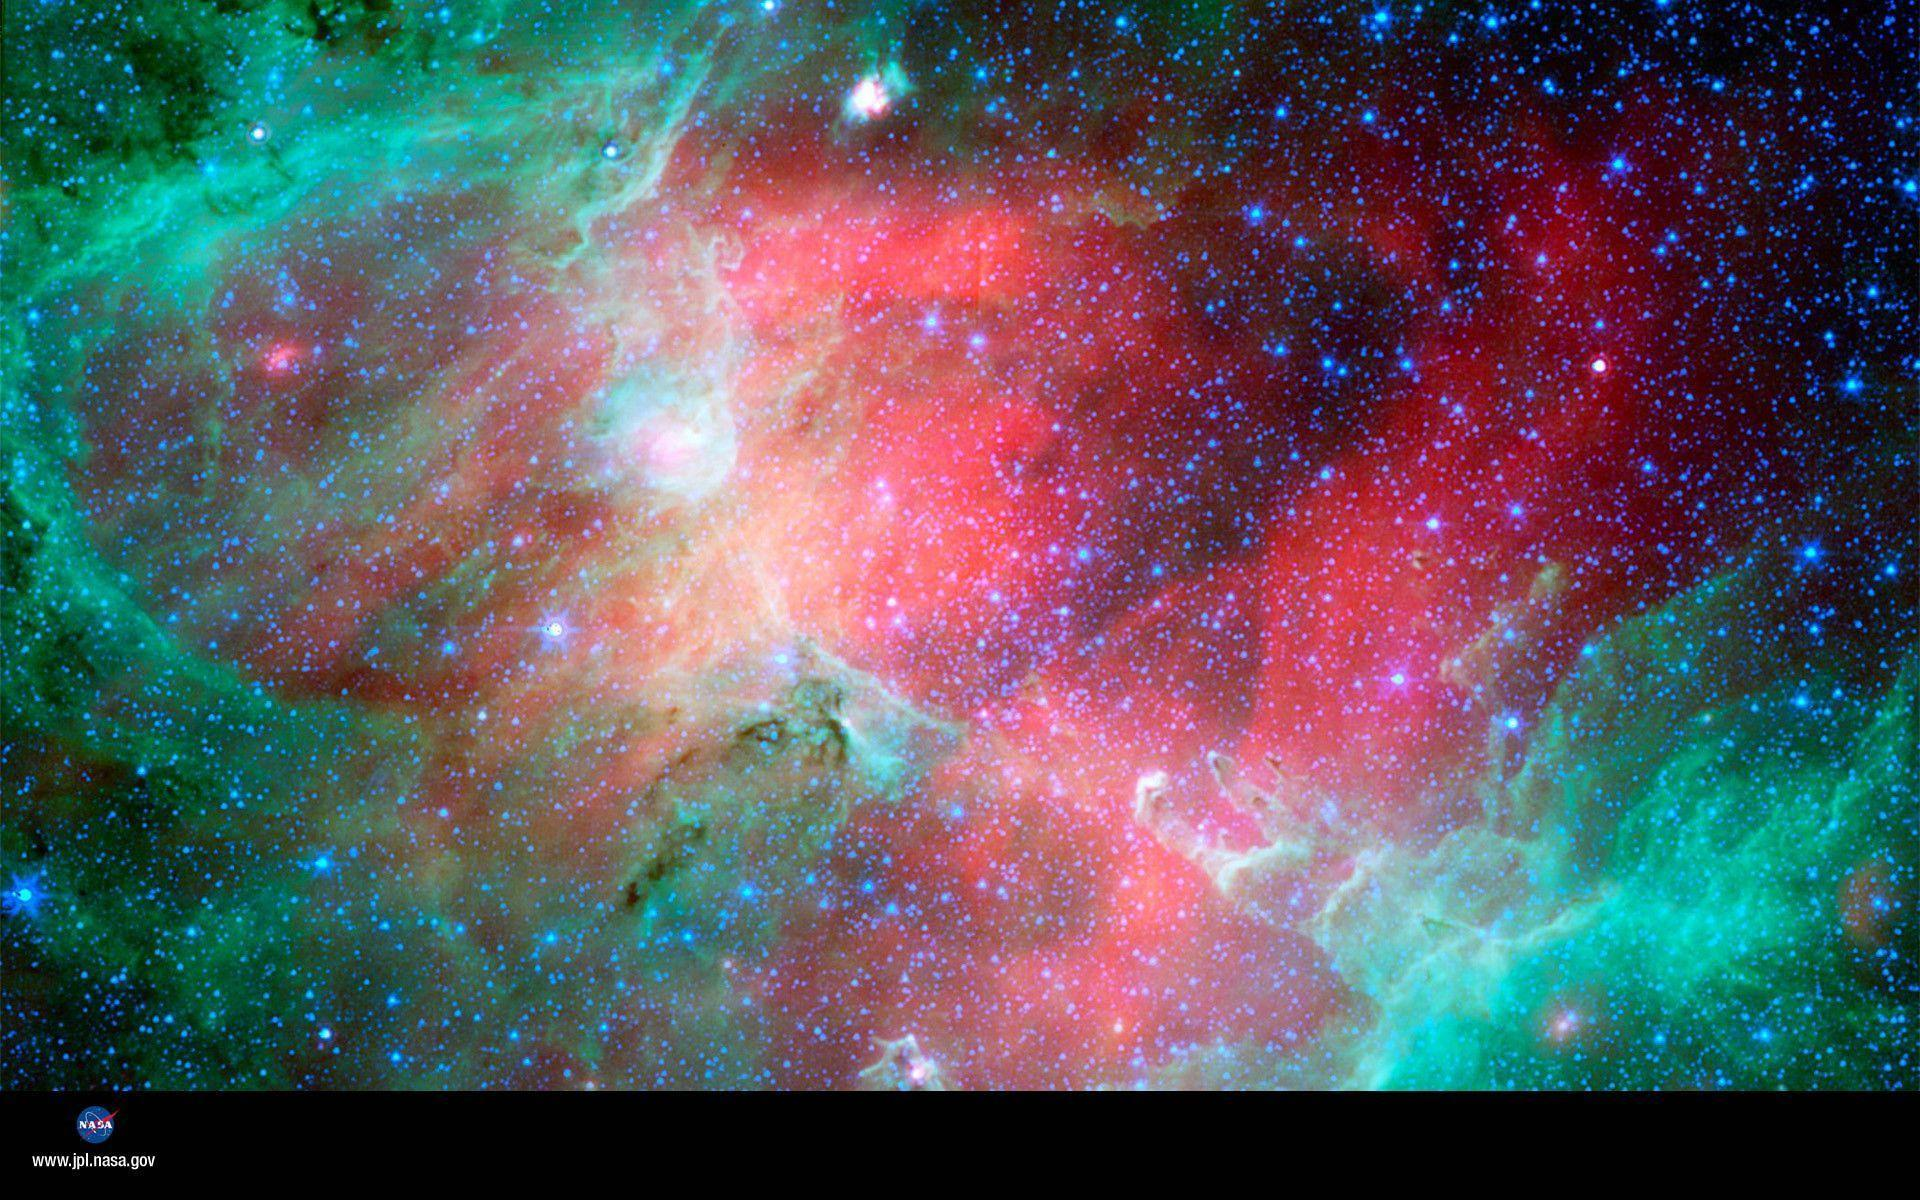 nebula hd wallpaper optical illusions - photo #29